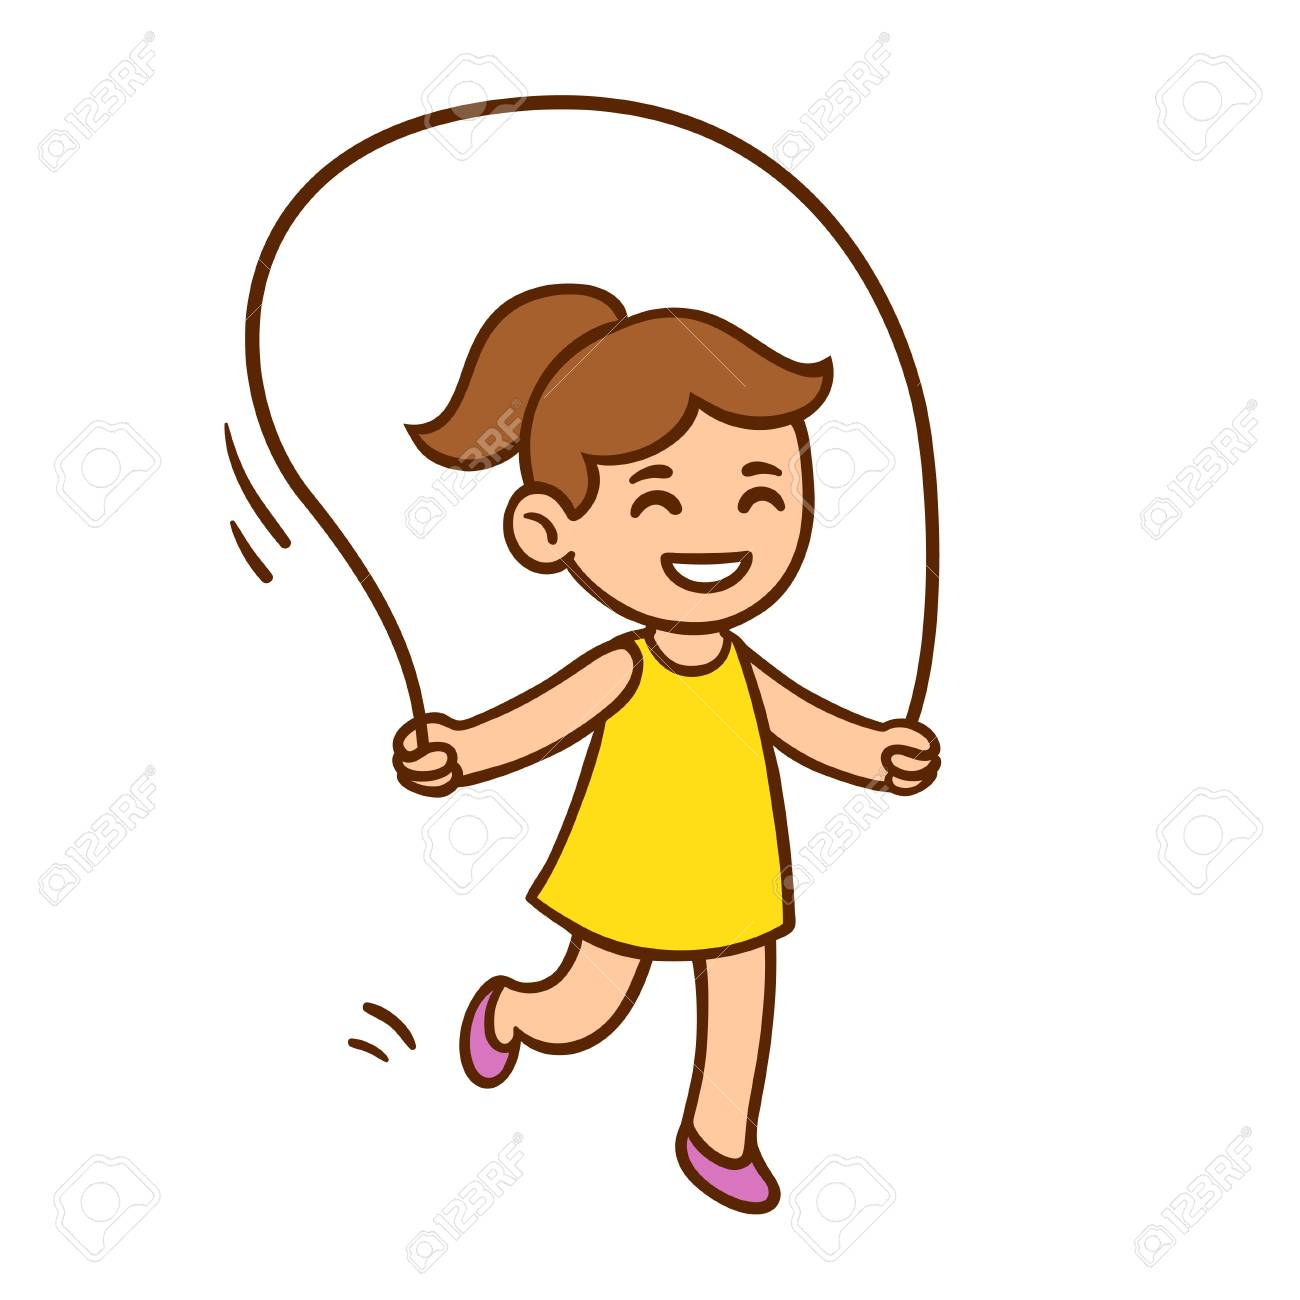 Vector illustration of cute cartoon little girl jumping rope.